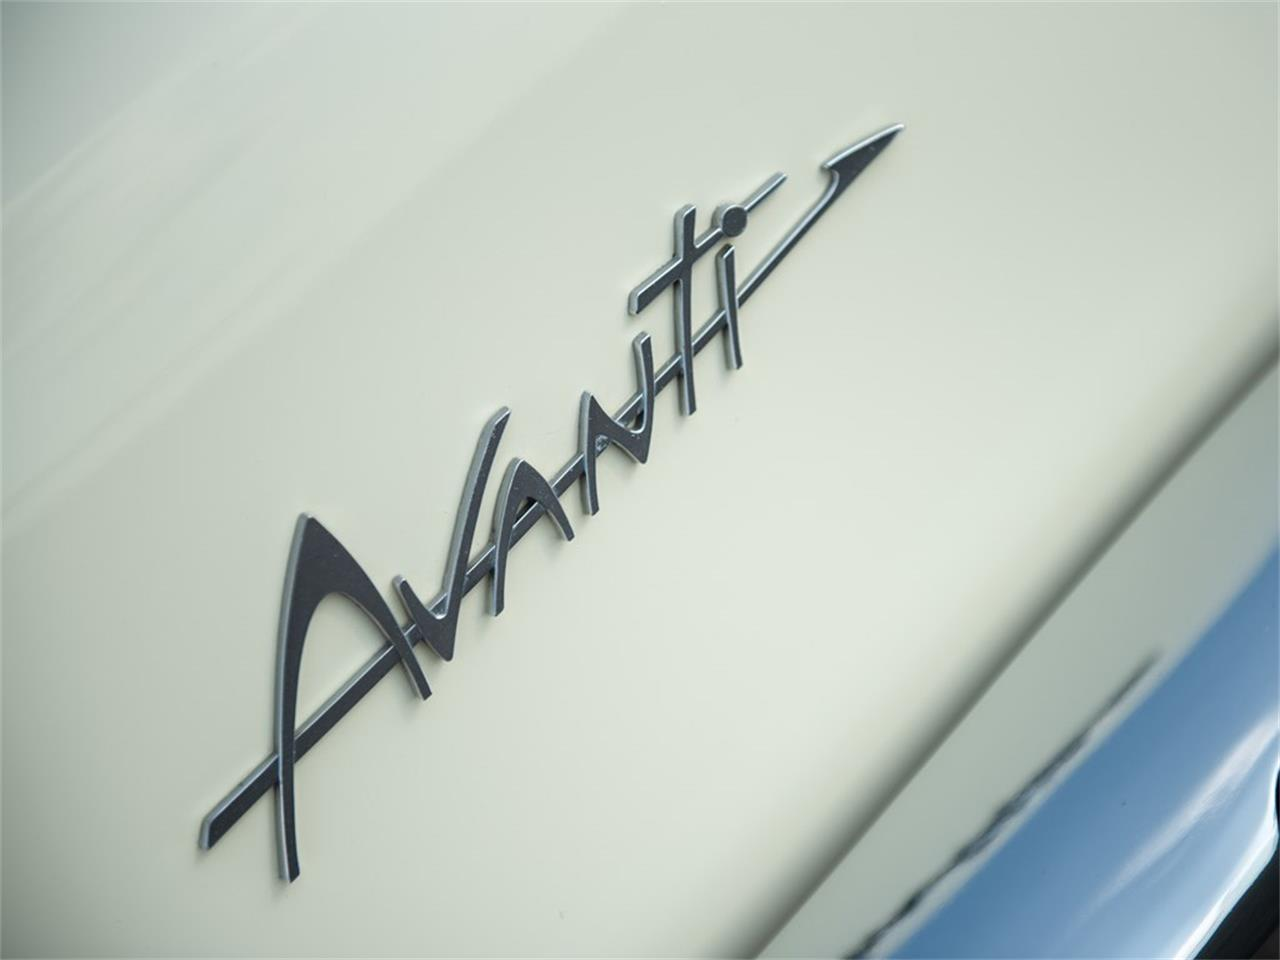 1963 Studebaker Avanti for sale in Auburn, IN – photo 5